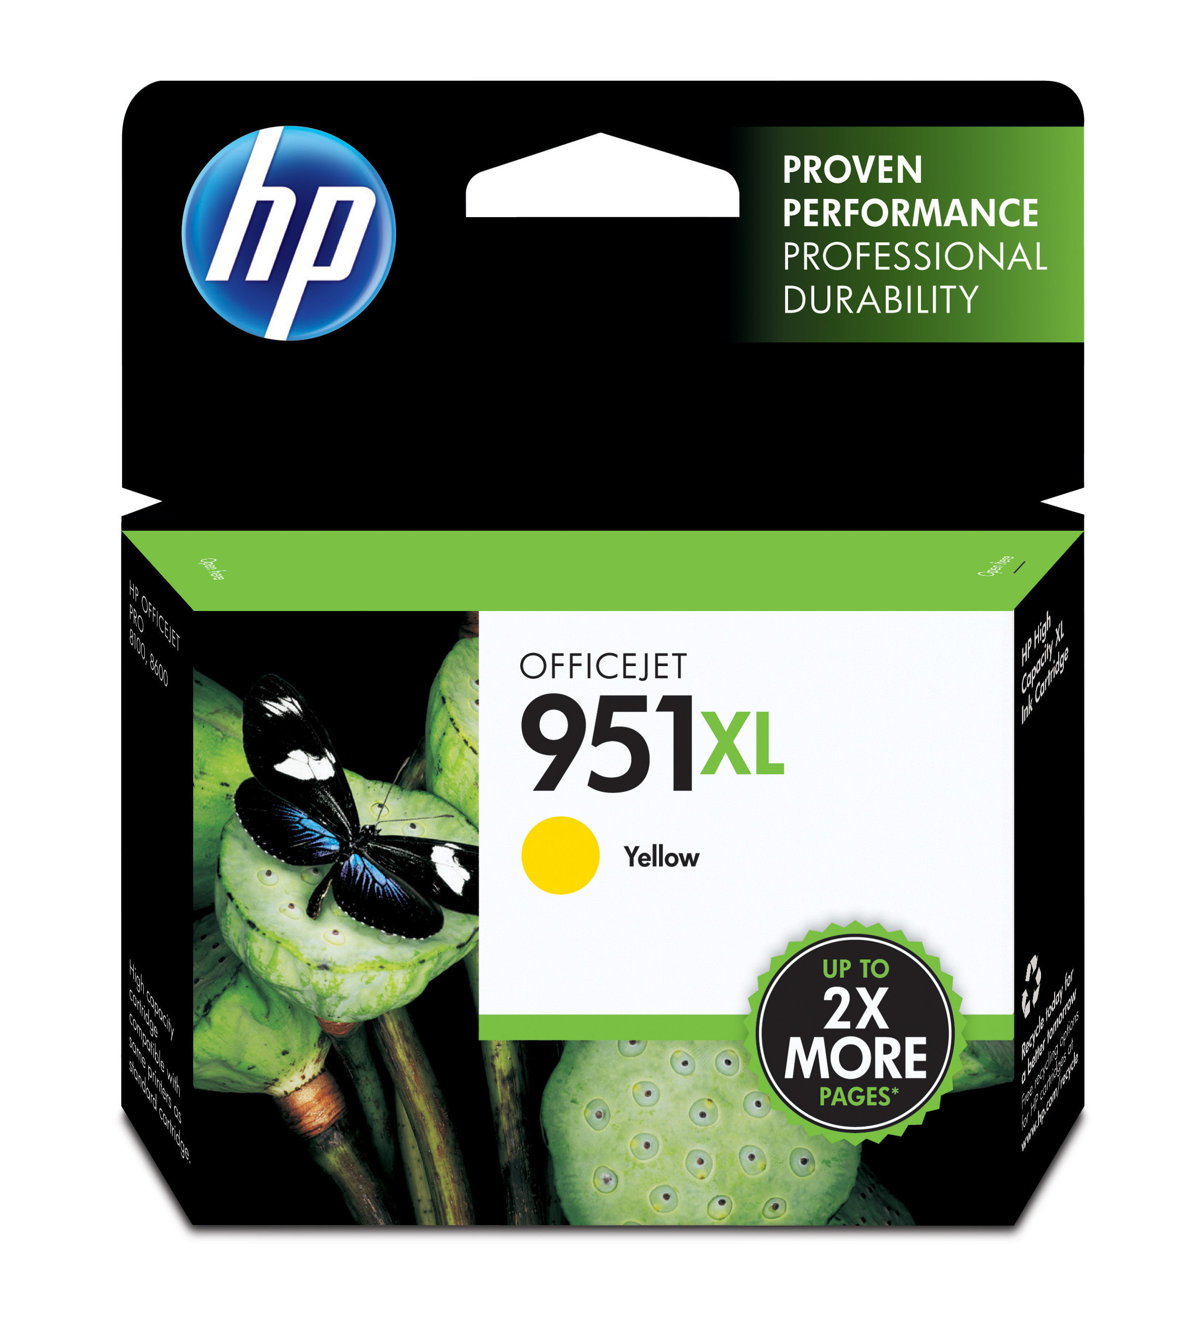 Office depot services register new product - Hp 951xl Yellow Original Ink Cartridge